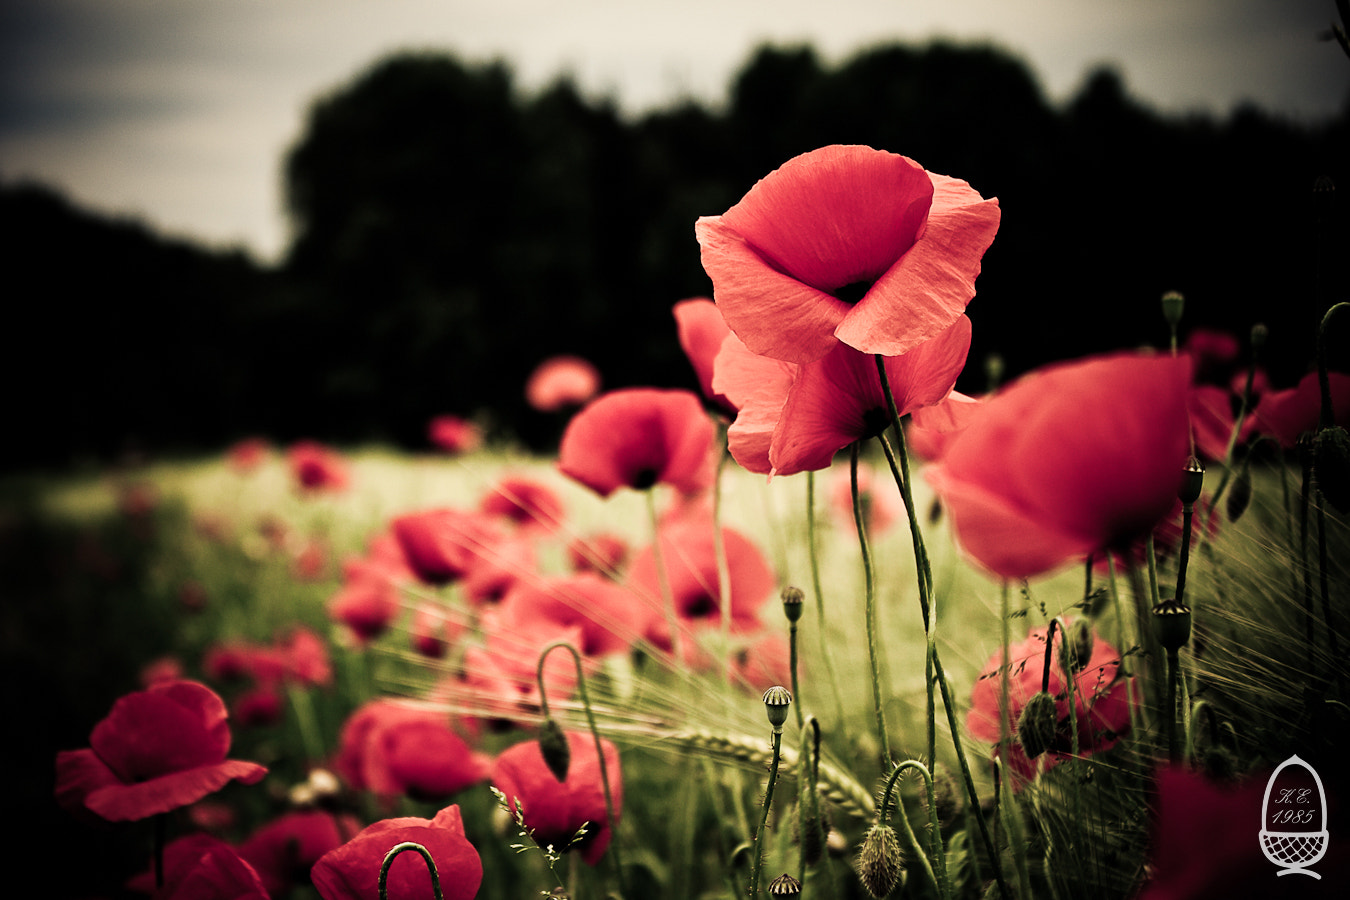 Photograph Red poppies by Katrin Eichleitner on 500px